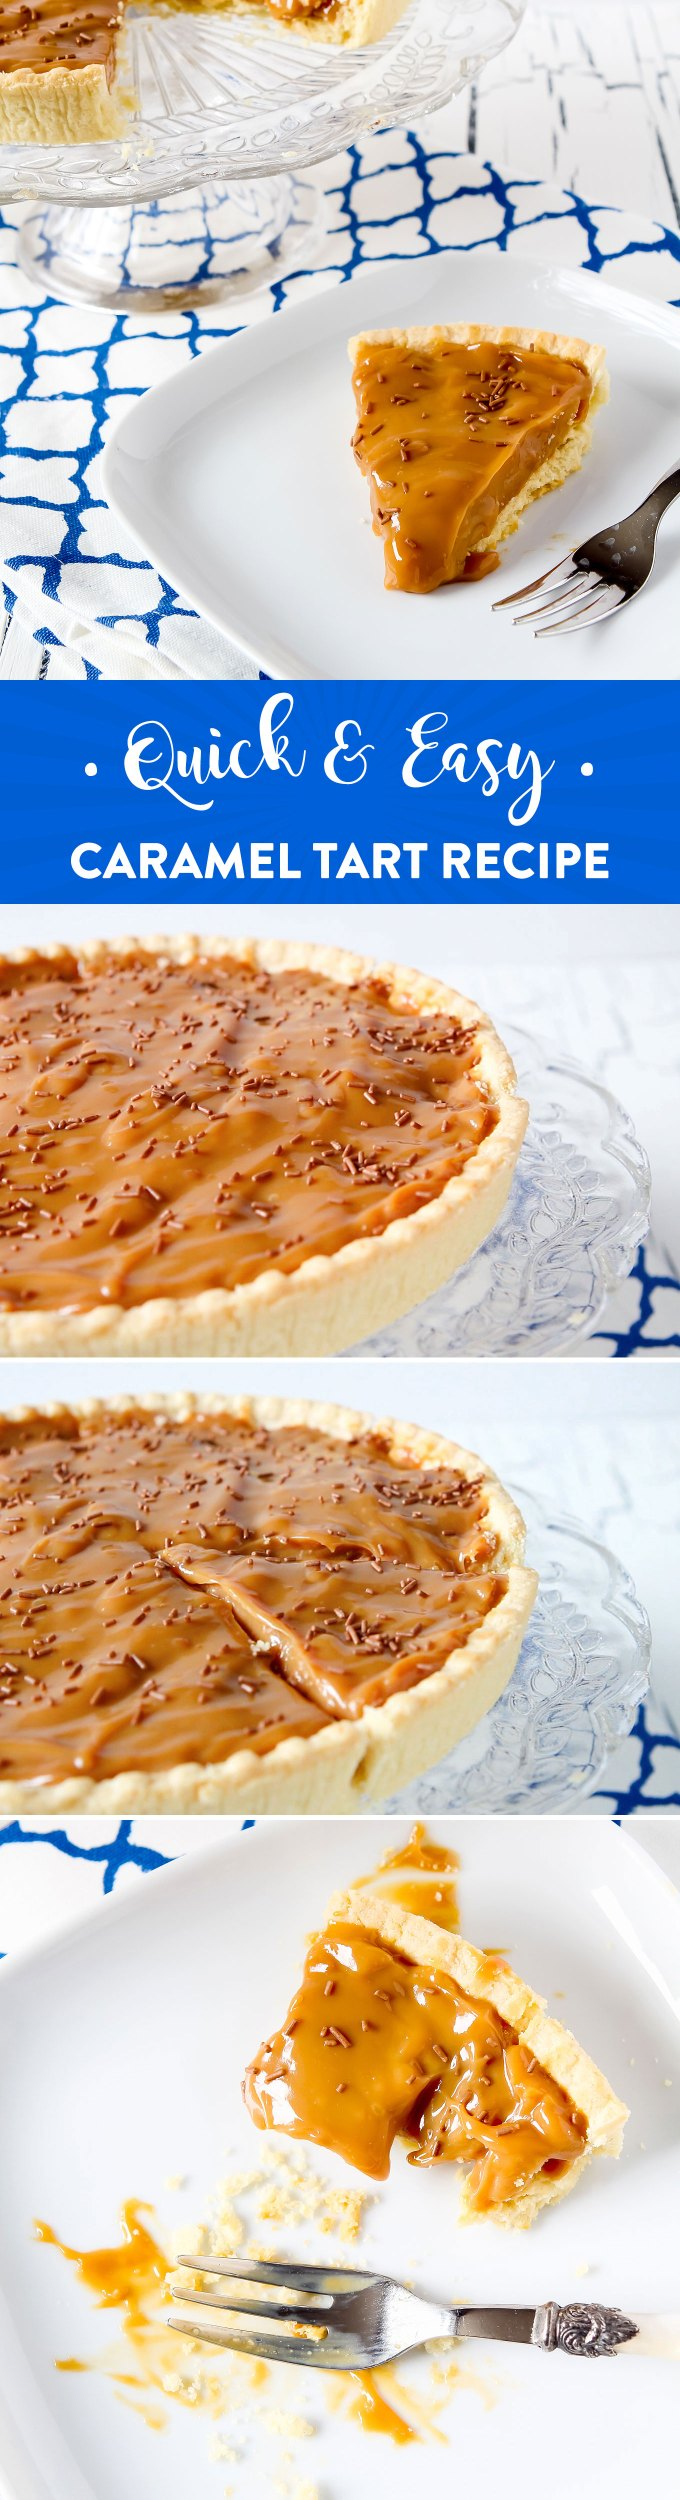 Quick and easy Caramel Tart recipe by Sweet2EatBaking.com   This rich and delicious dessert needs just 2-3 ingredients needed, and just 5 minutes of your time! Video tutorial too.